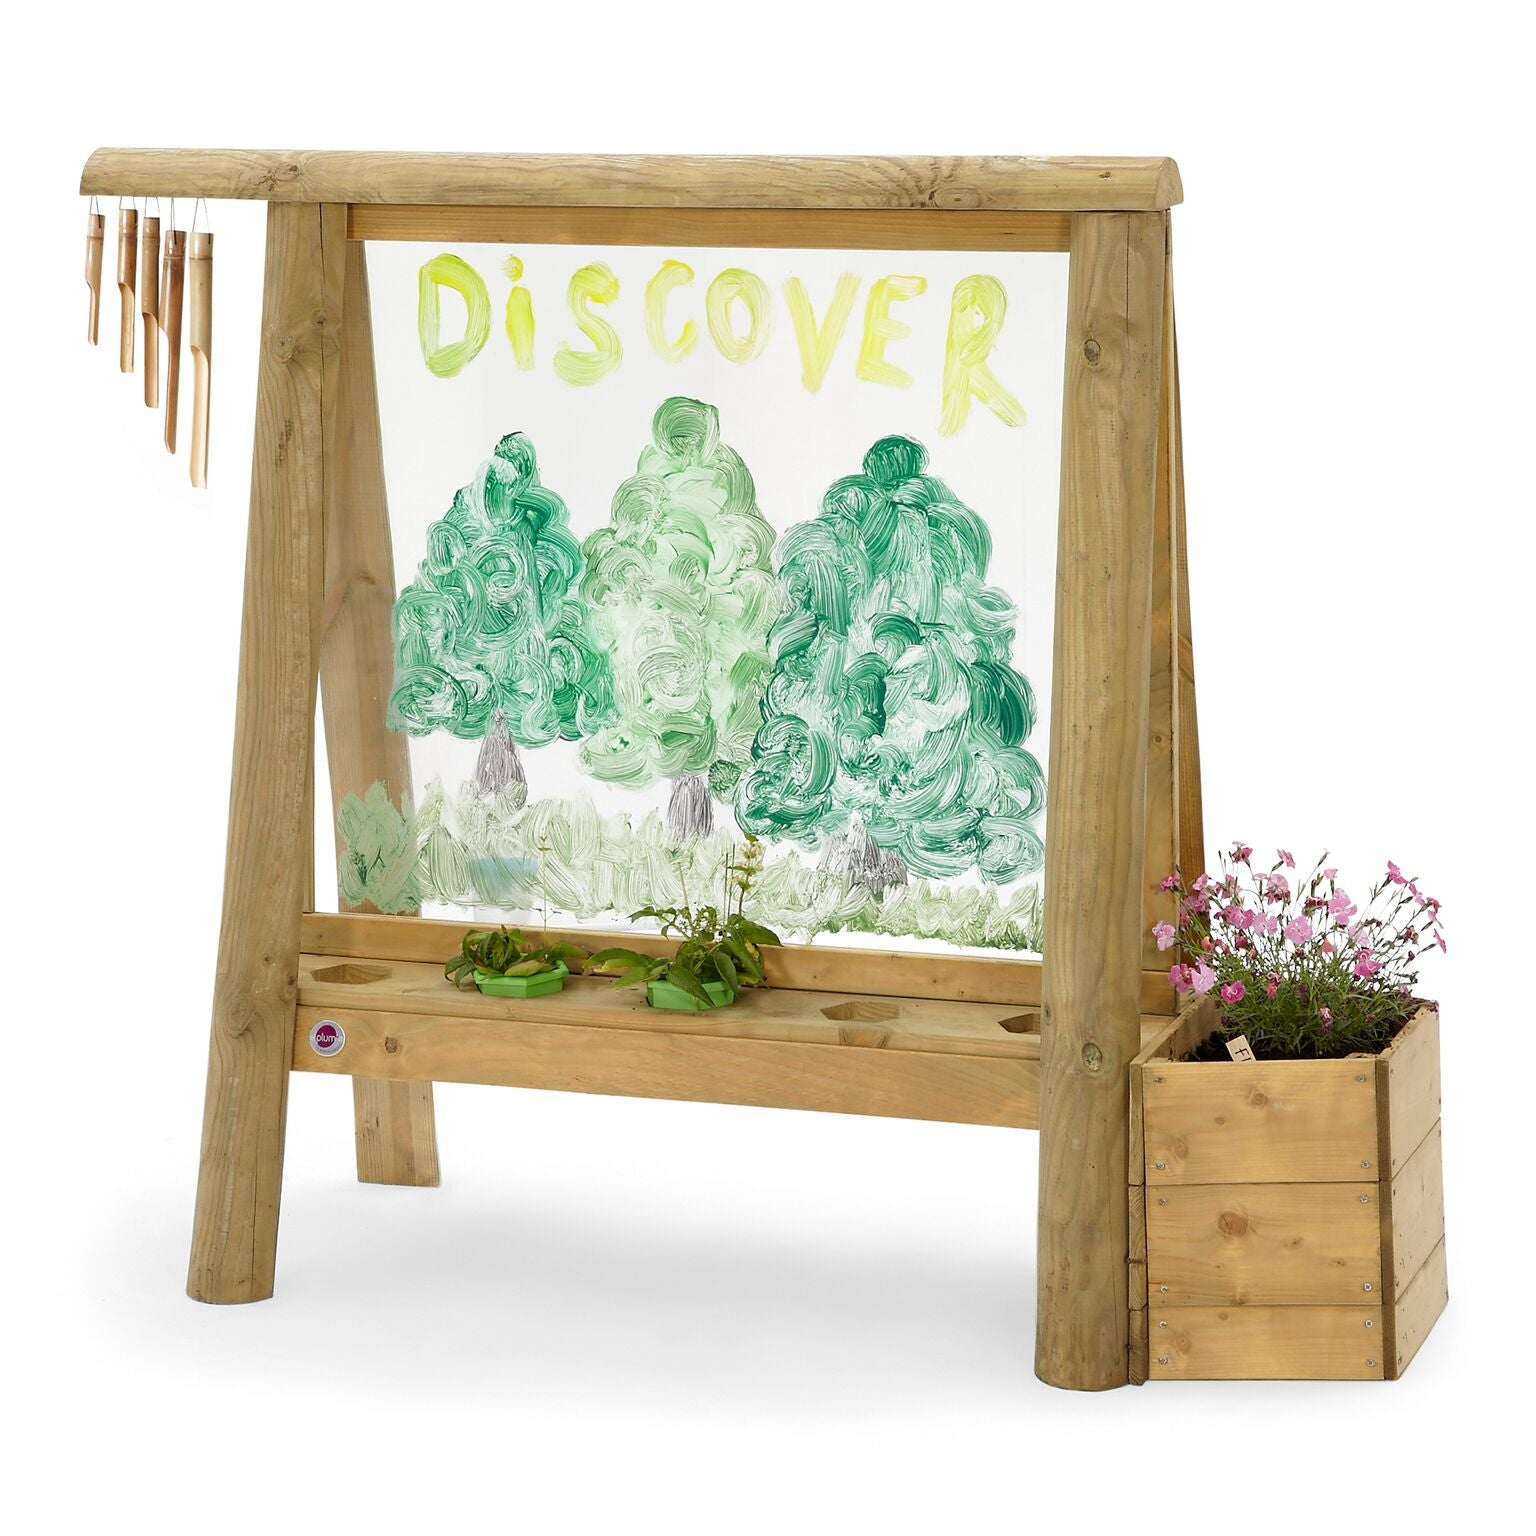 Plum Discovery Wood Create and Paint Easel